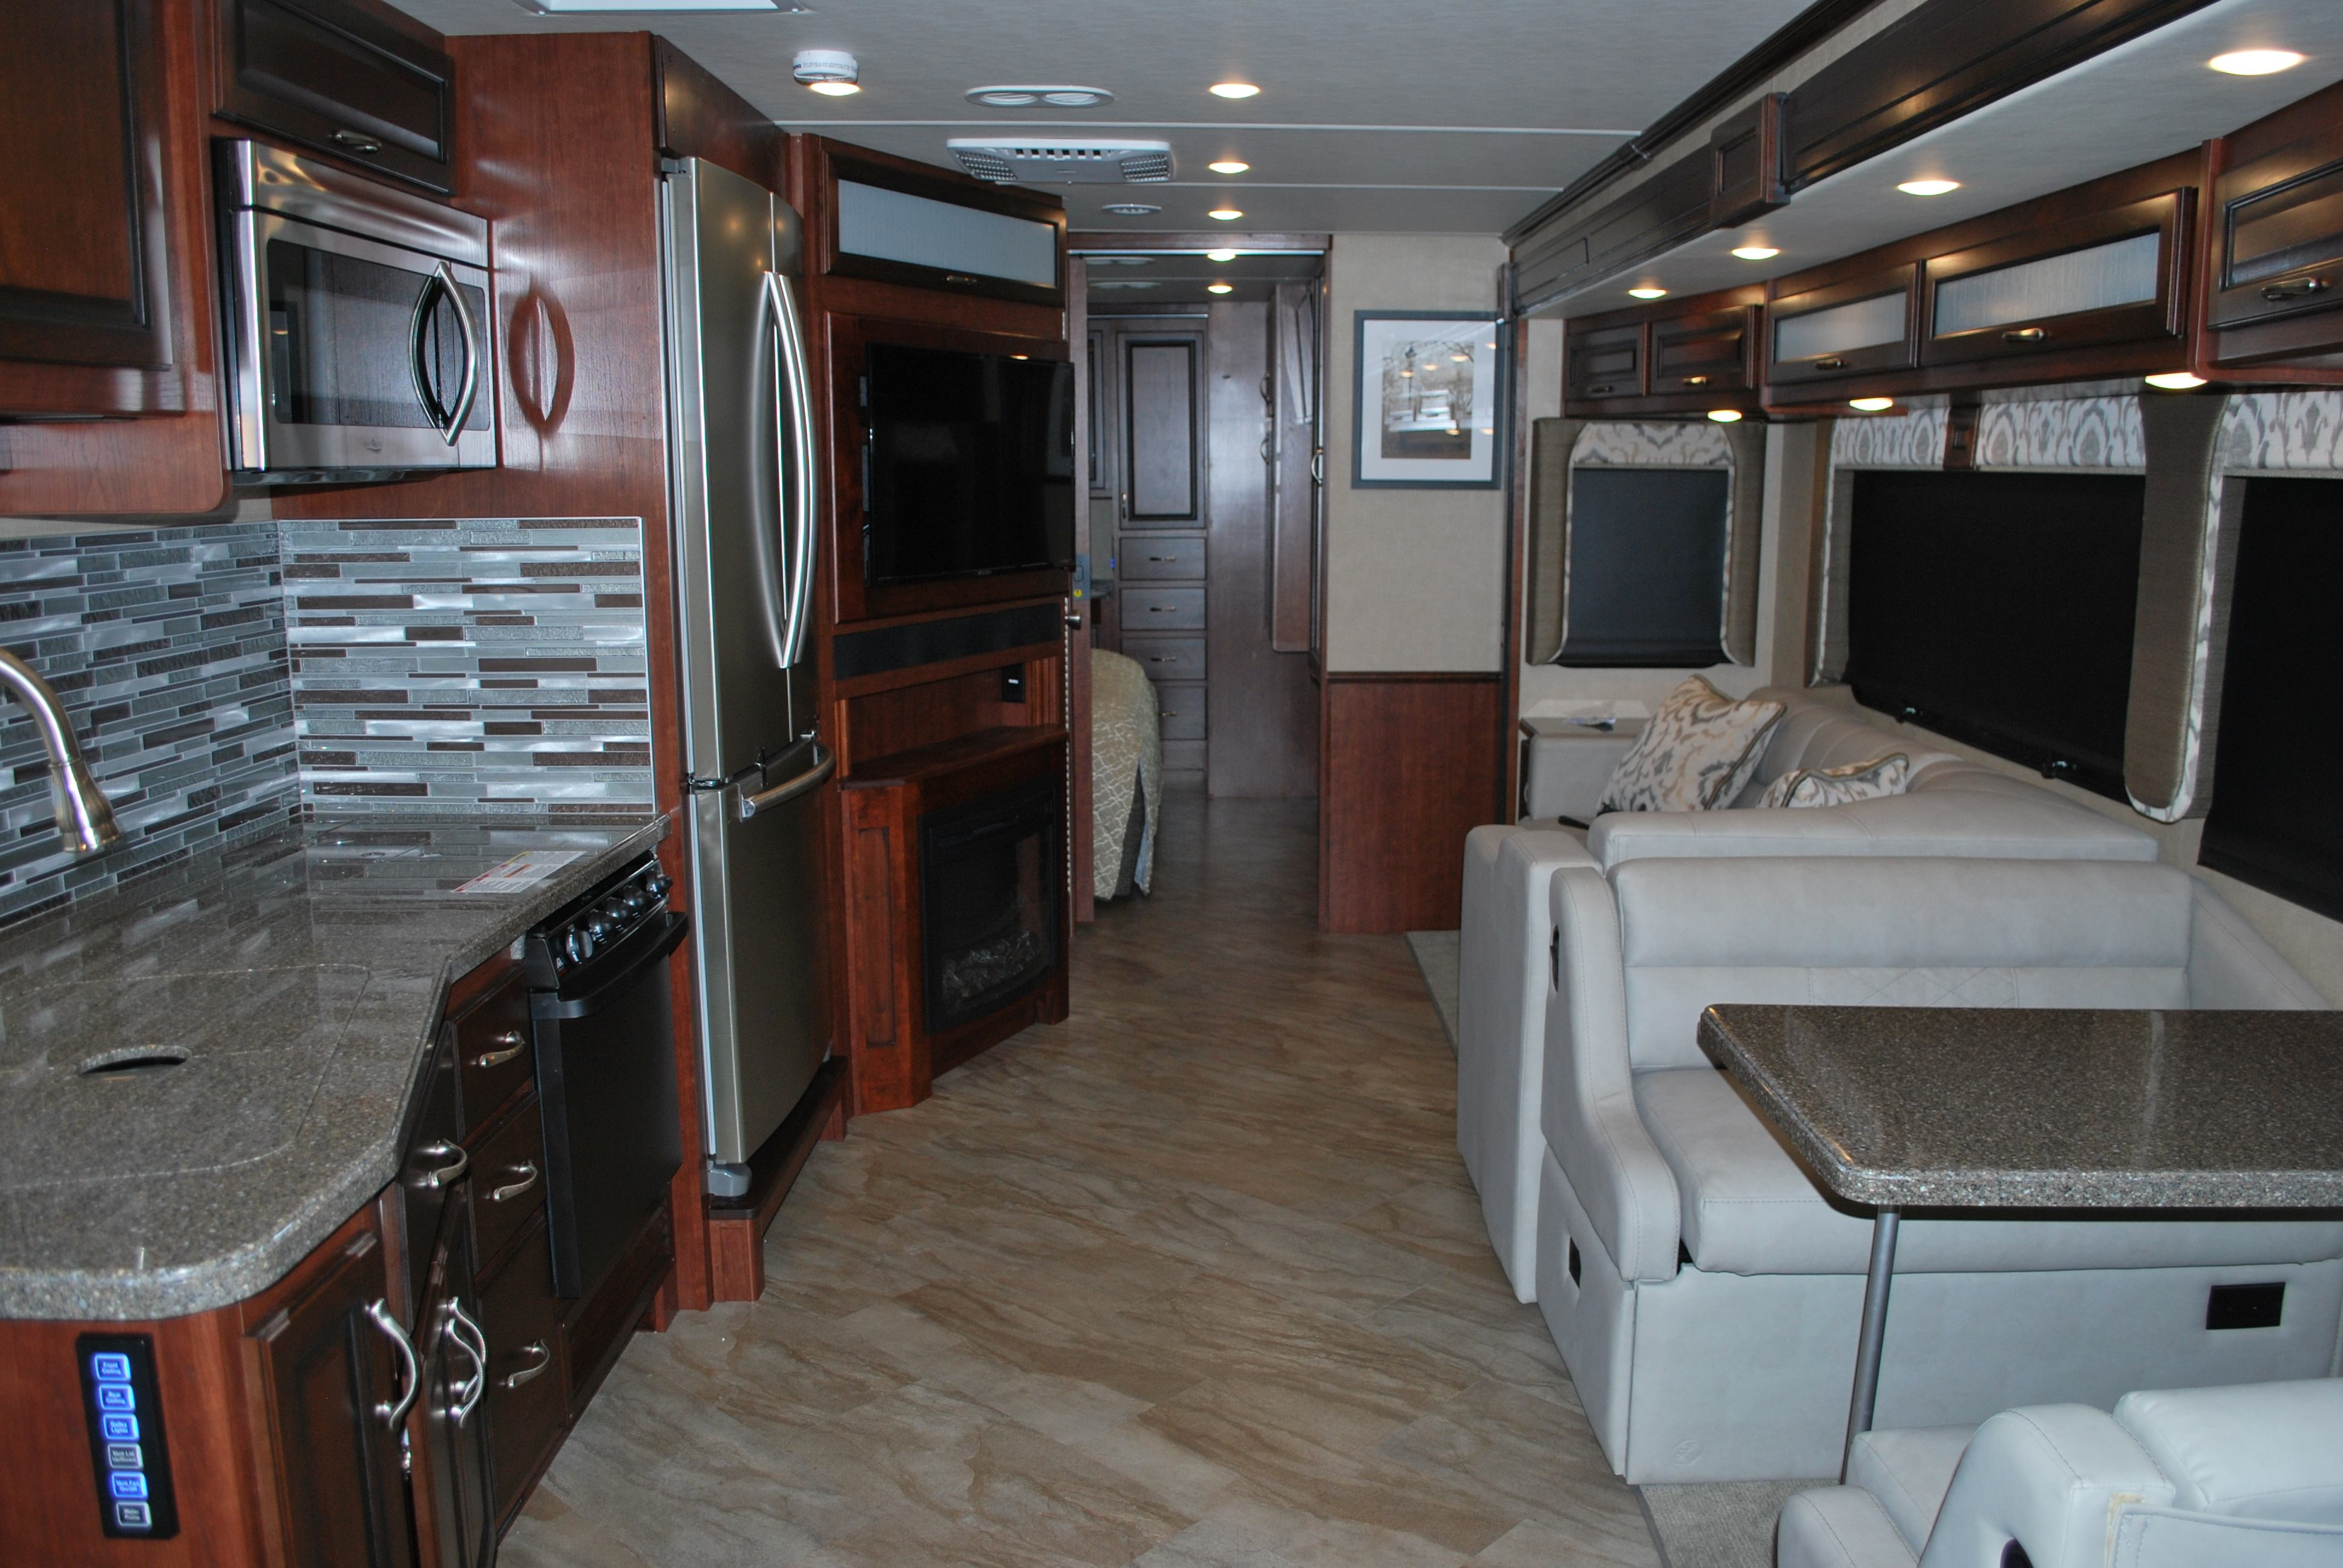 35 Fleetwood Bounder Luxury Class A Rv Rental